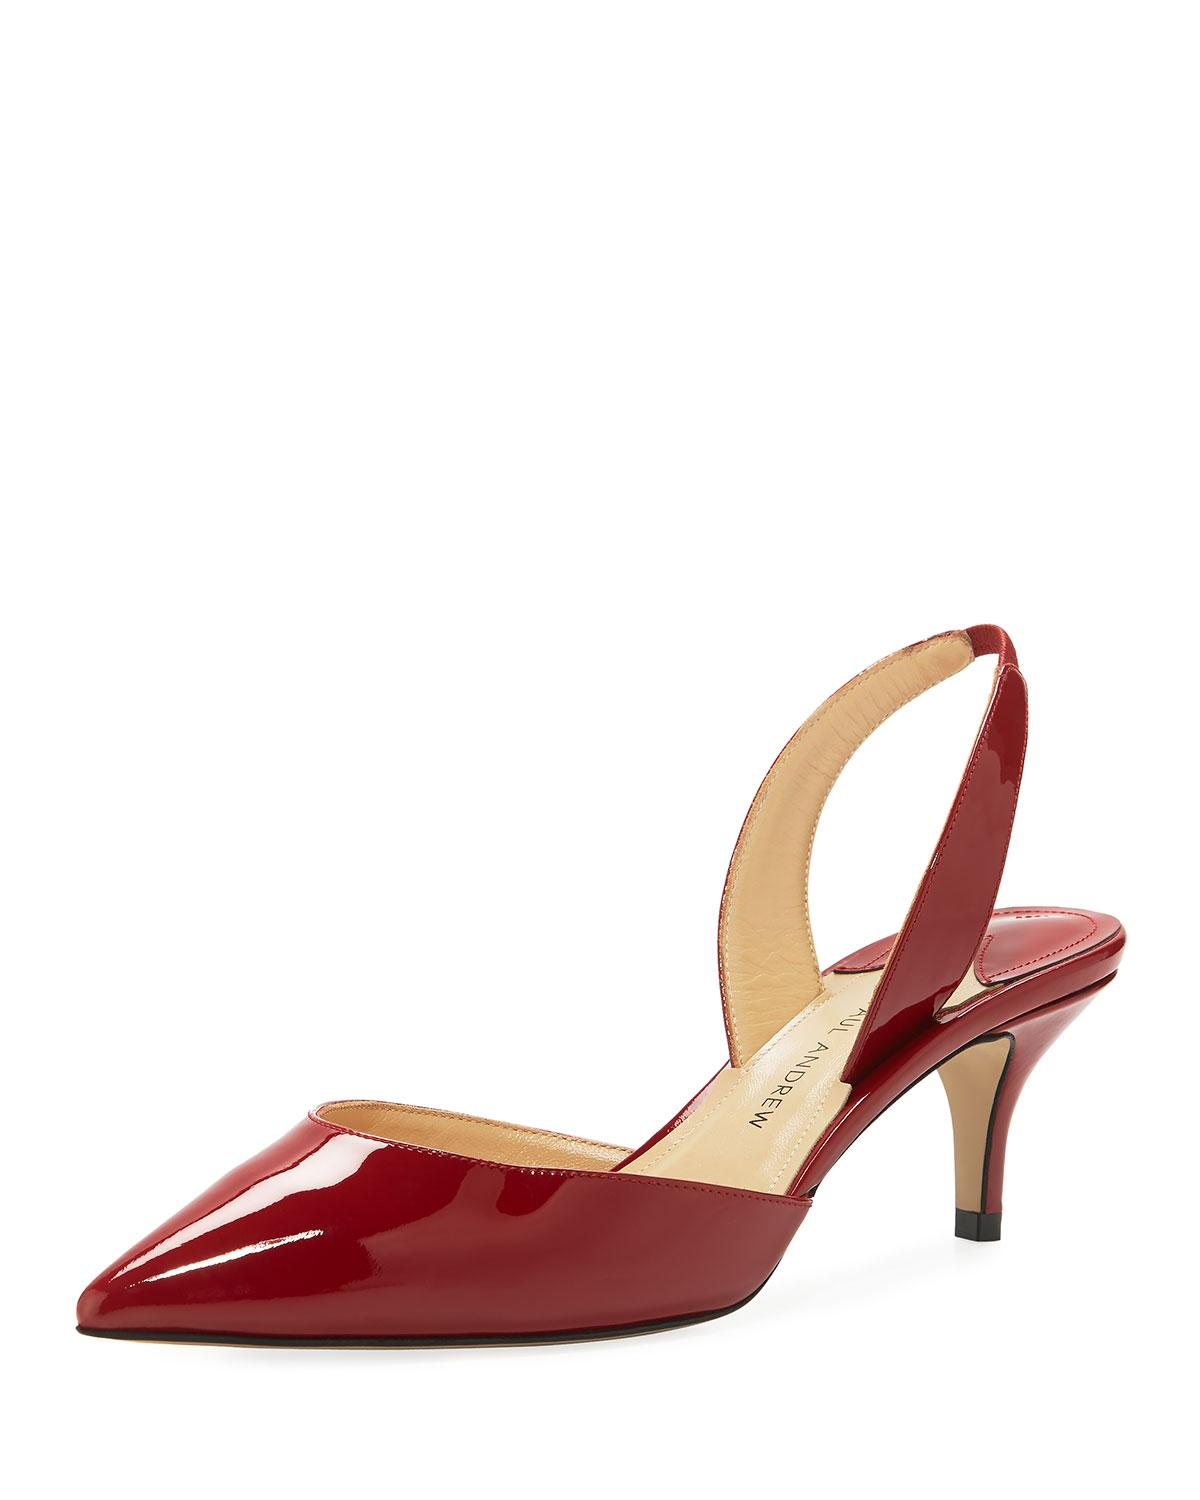 Paul Andrew Rhea 55Mm Patent Leather Slingback Pumps In Red